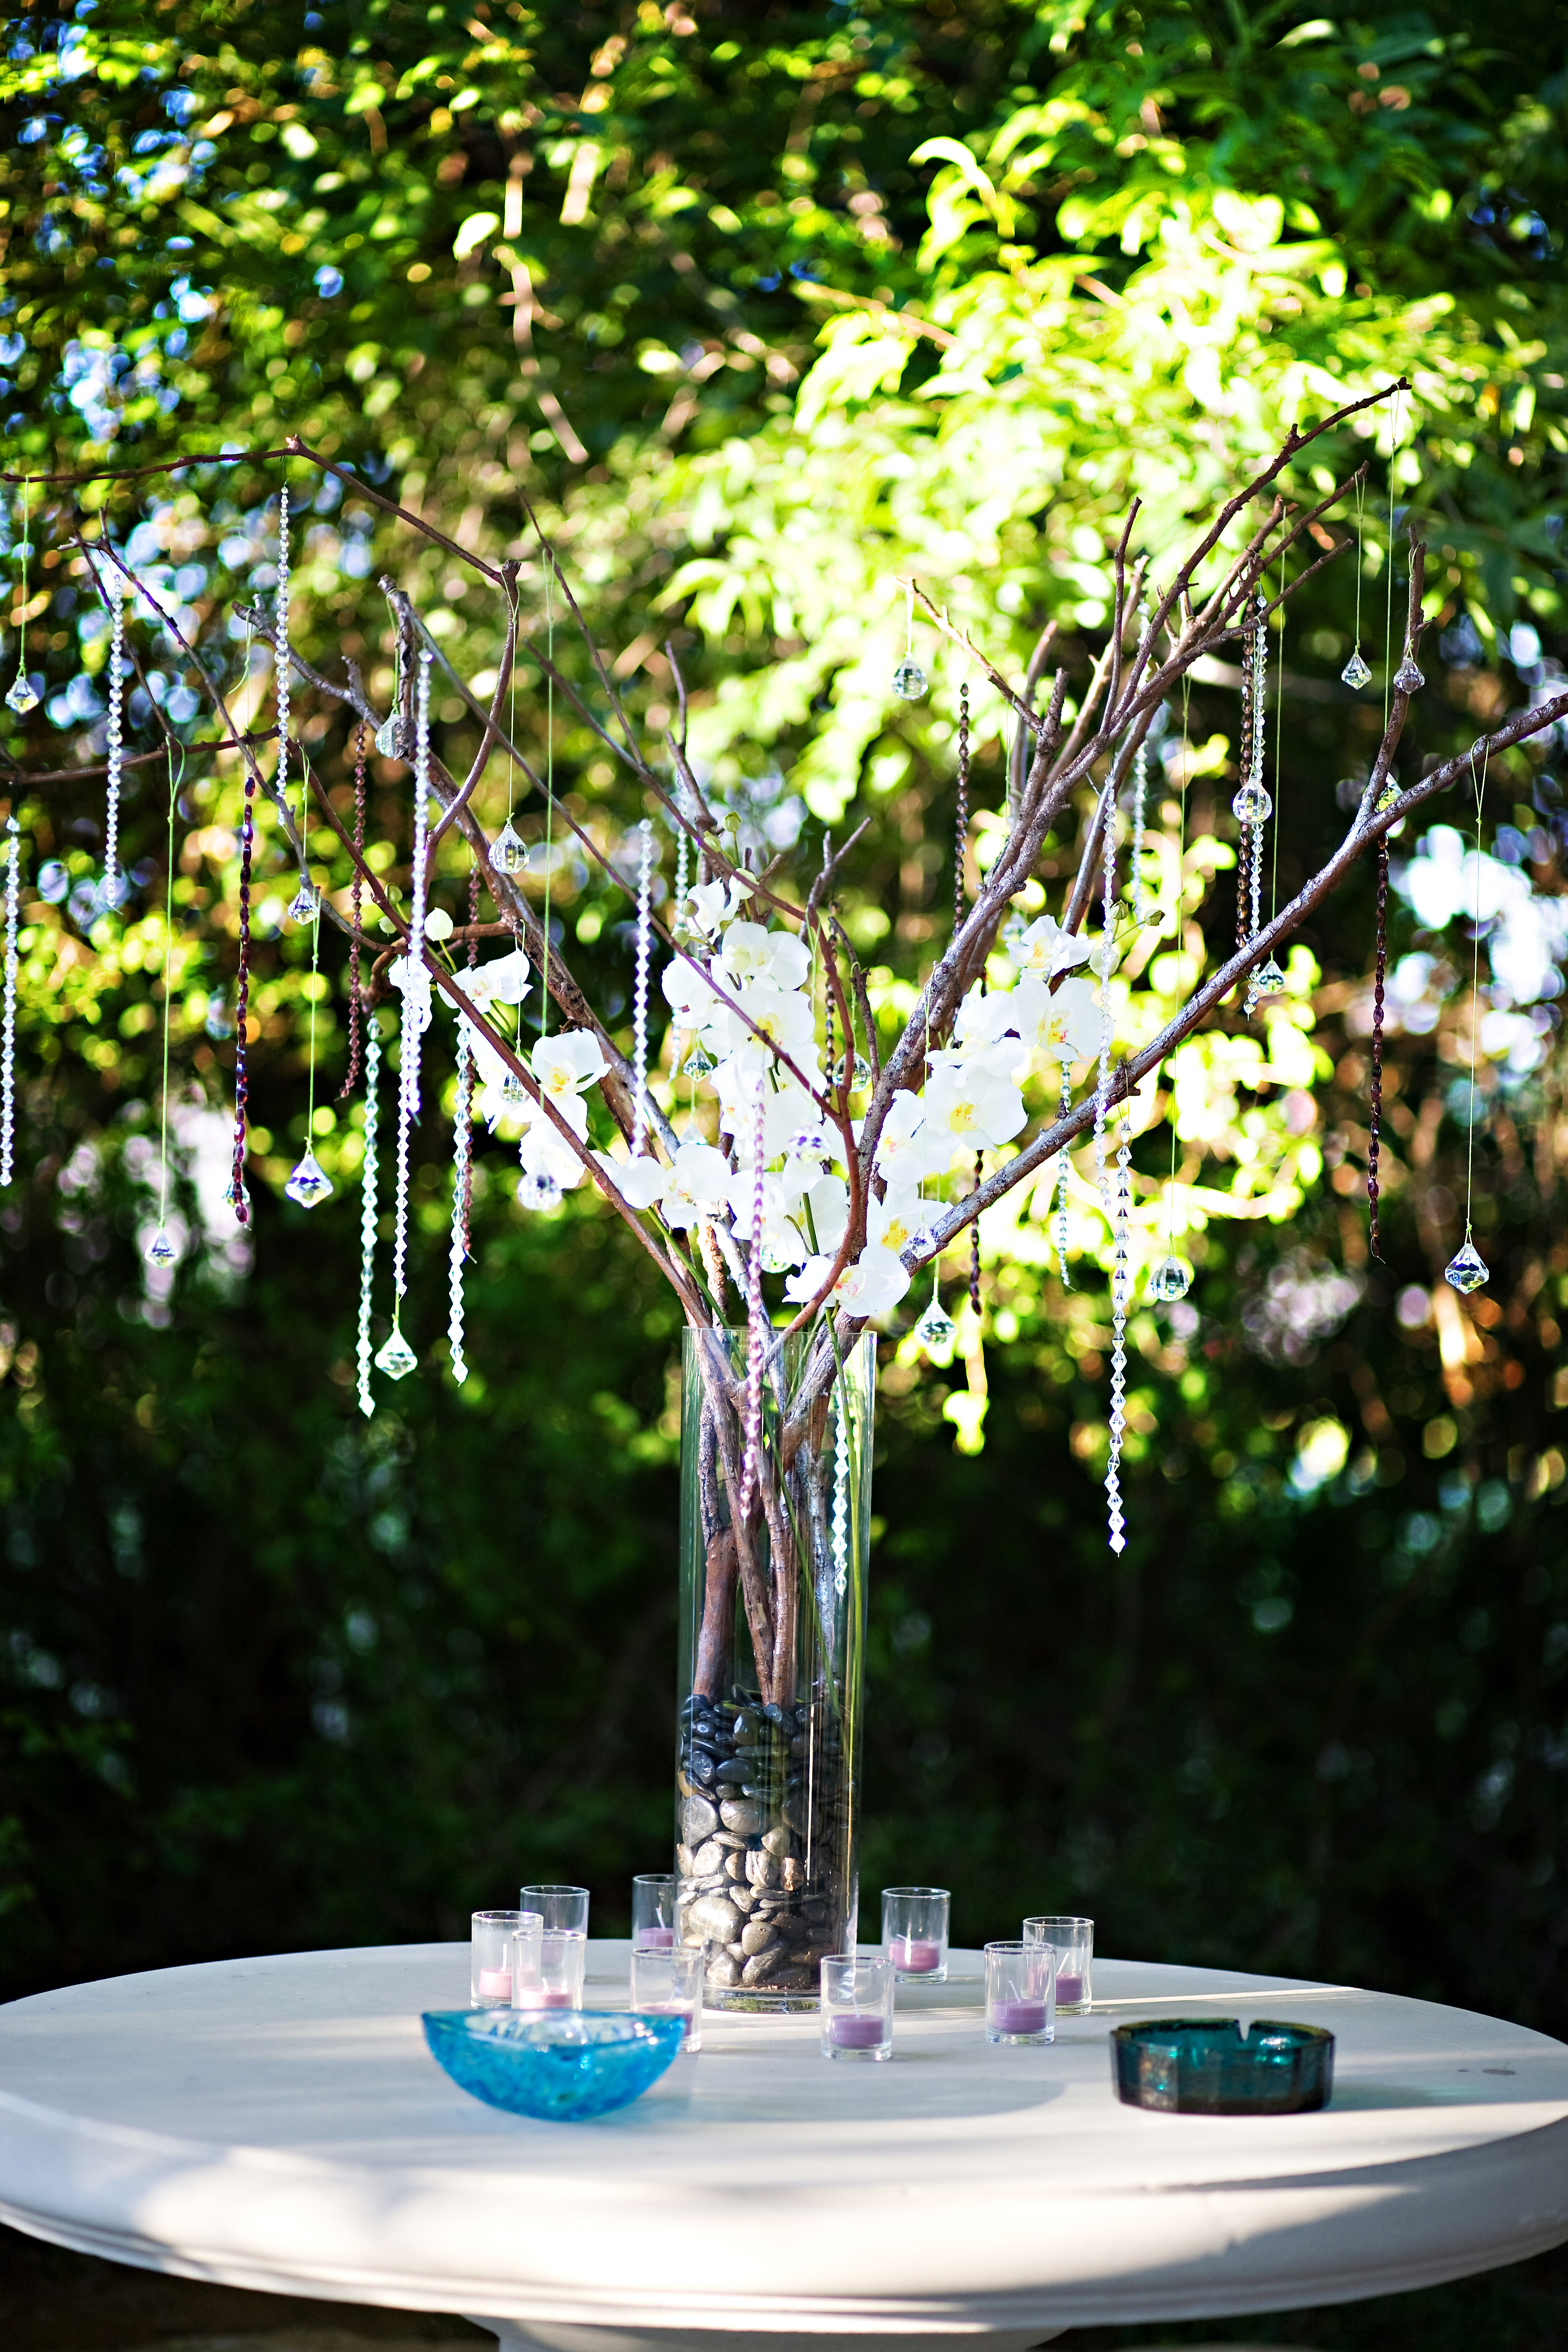 Reception, Flowers & Decor, Centerpieces, Centerpiece, Branches, Lounge